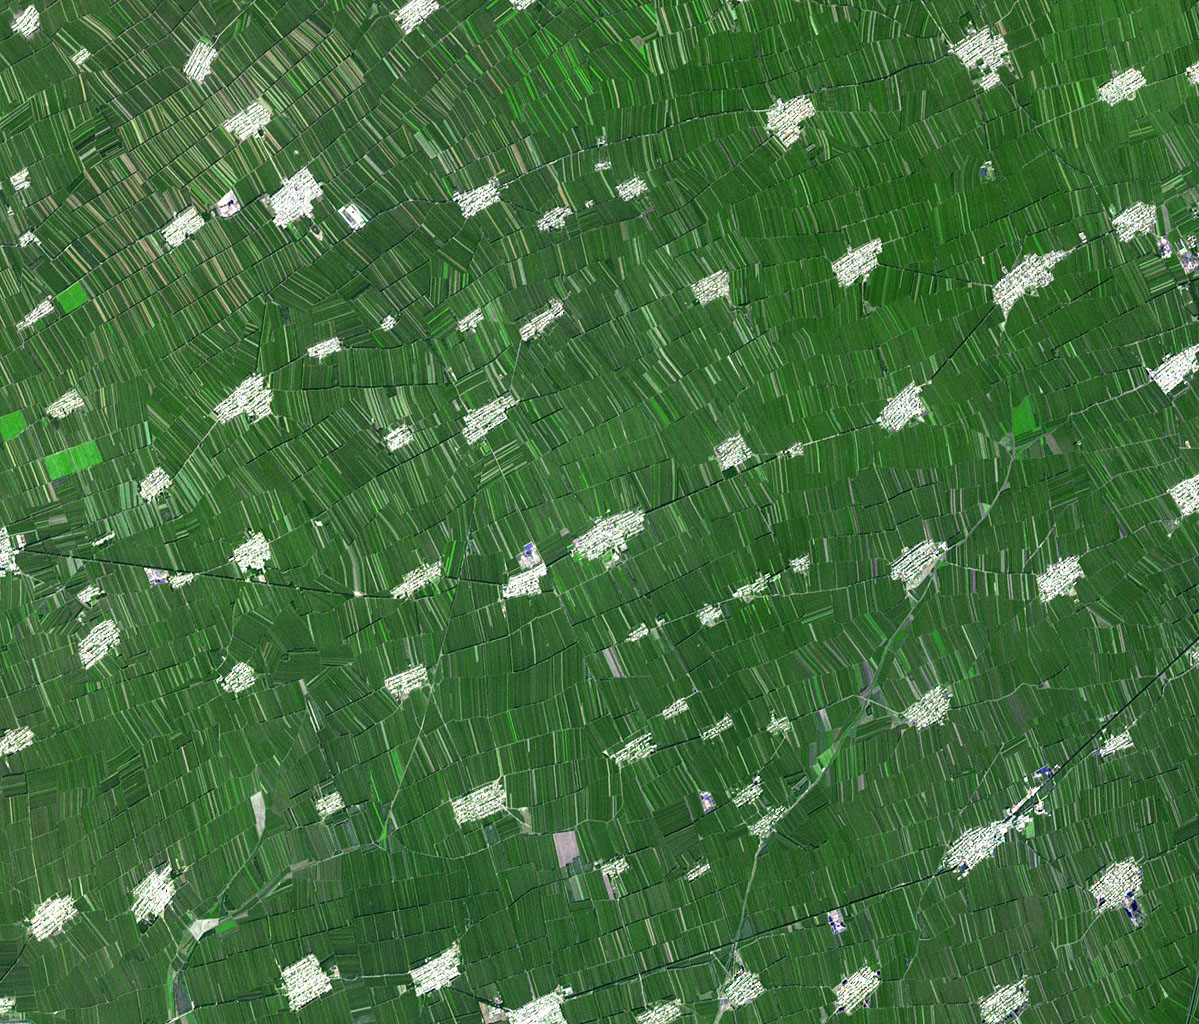 Acquired by NASA's Terra spacecraft, this image shows Heilongjiang, a province of China located in the northeastern part of the country. Farms are small and long skinny rectangles in shape, surrounding regularly spaced villages.